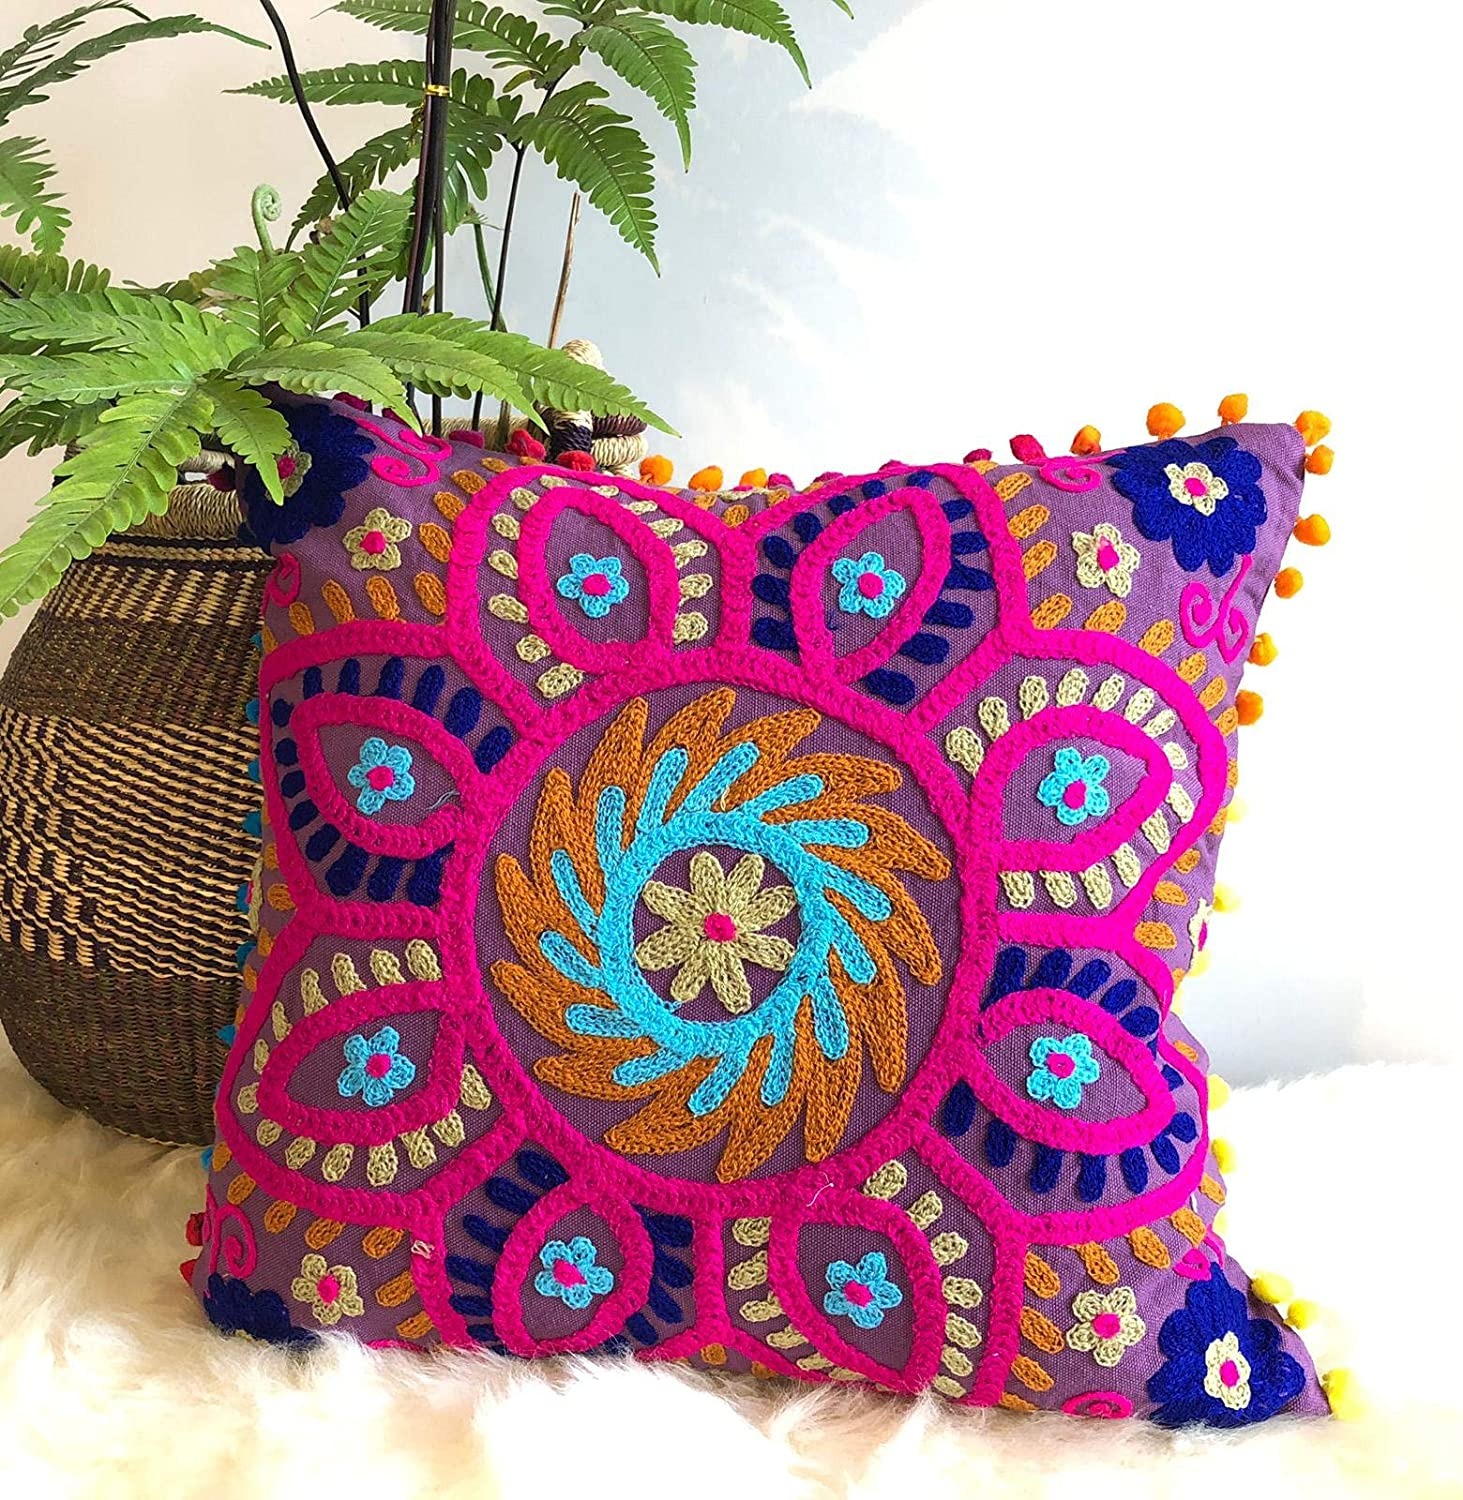 Amazon Com Traditional Jaipur Suzani Pillows Embroidered Cushion Cover 16x16 Decorative Throw Pillow Case Indian Pom Pom Outdoor Cushions Boho Pillow Shams Home Kitchen